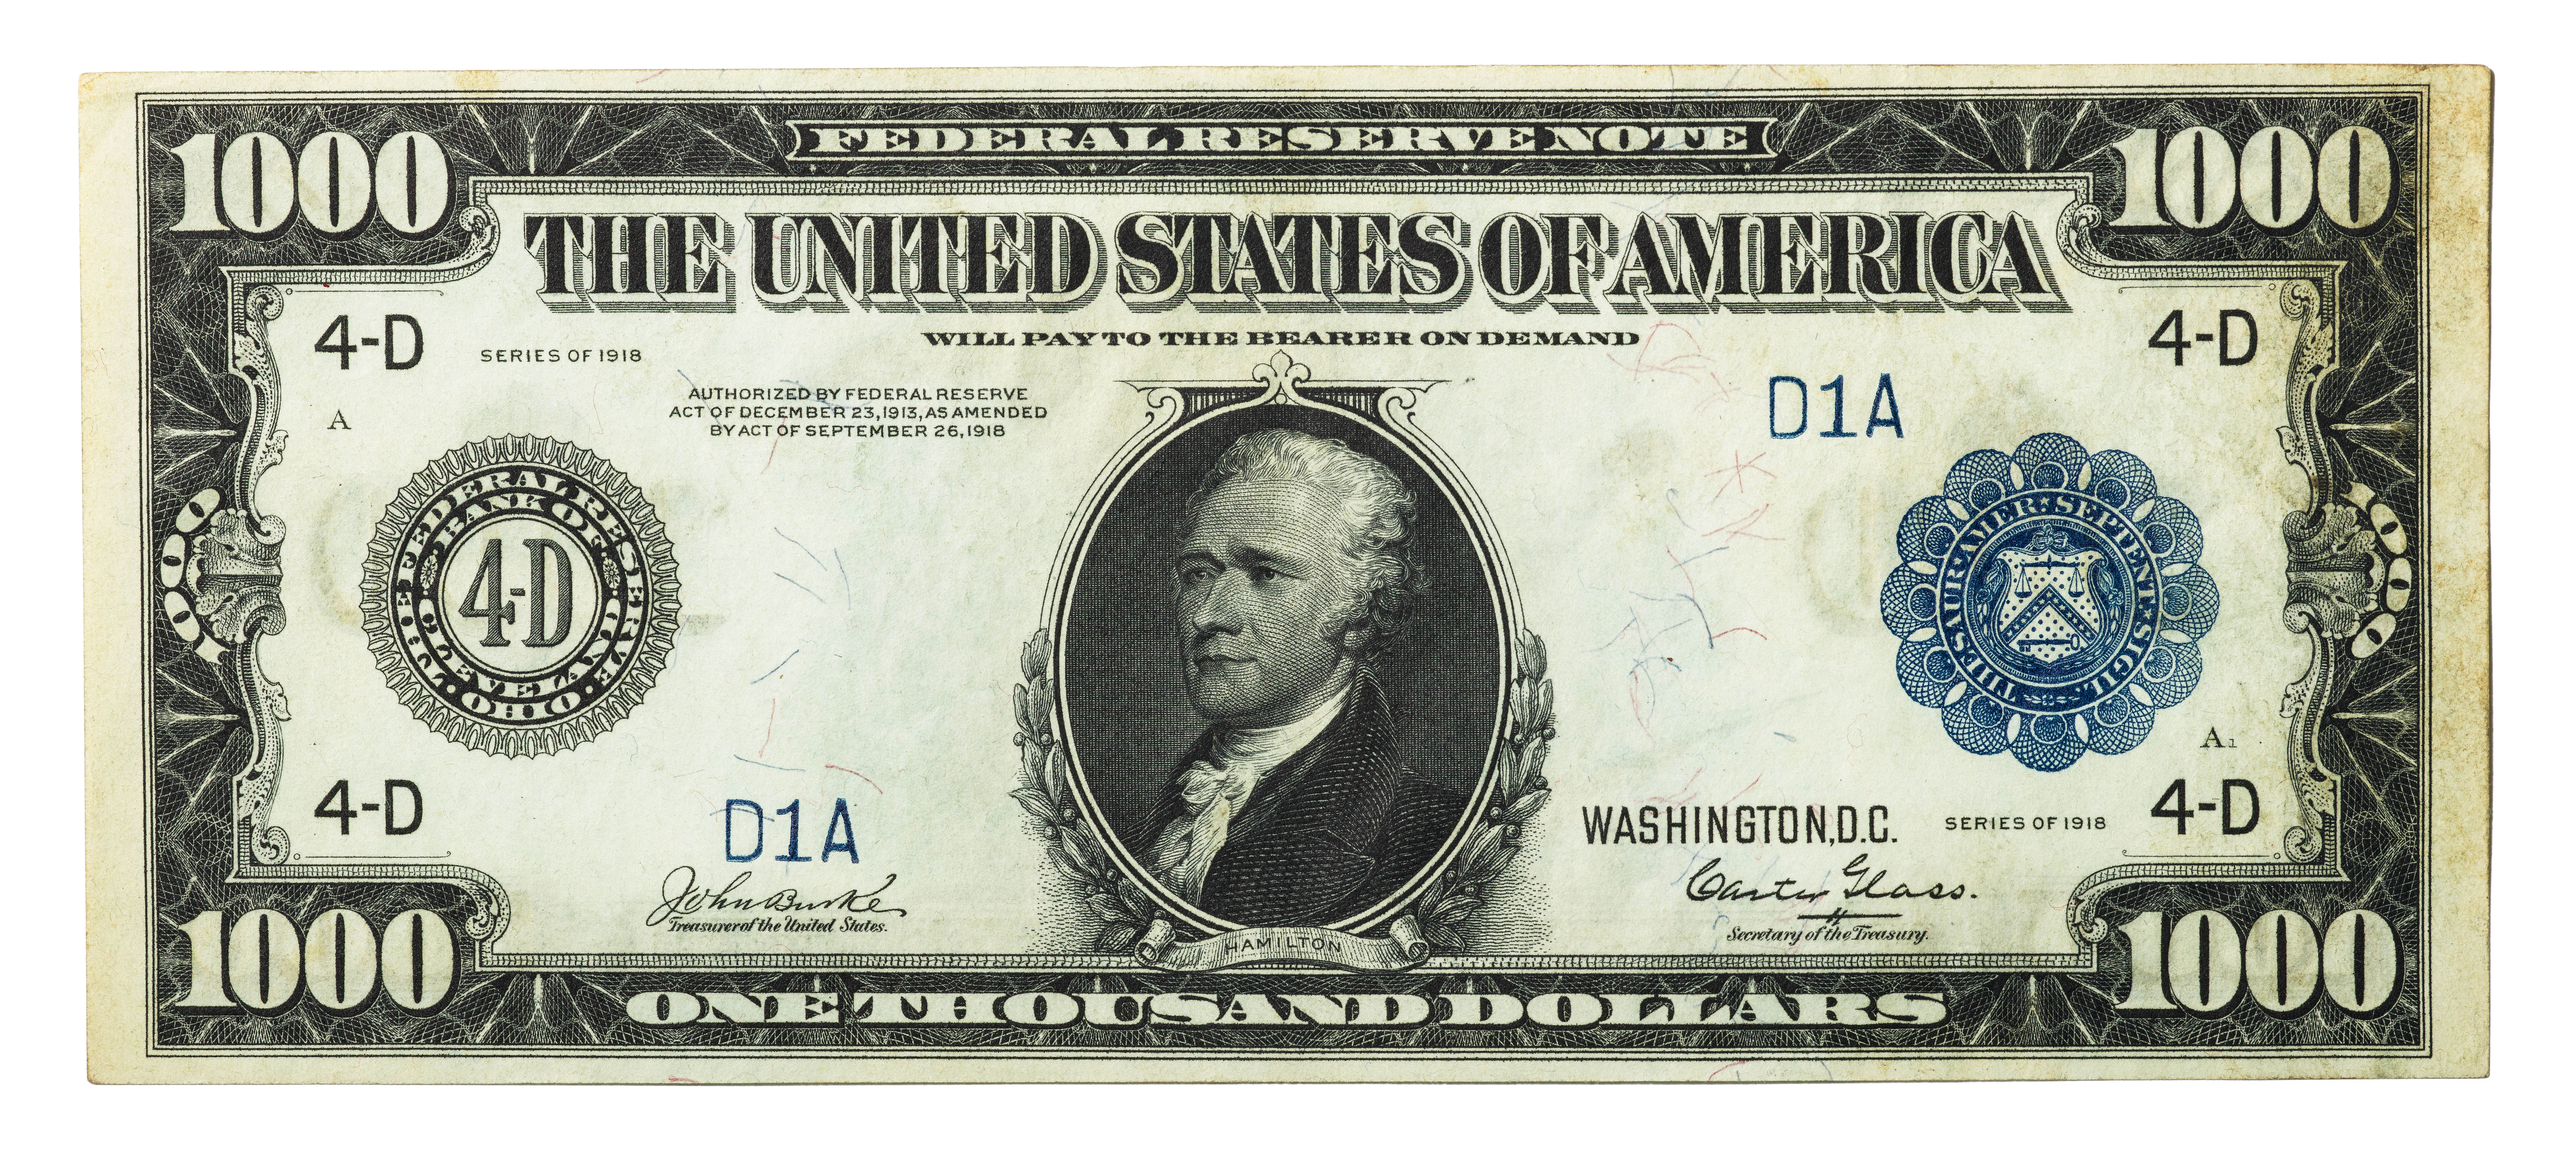 Federal Reserve Note In Text At Top Of Rectangular Paper Bill Portrait